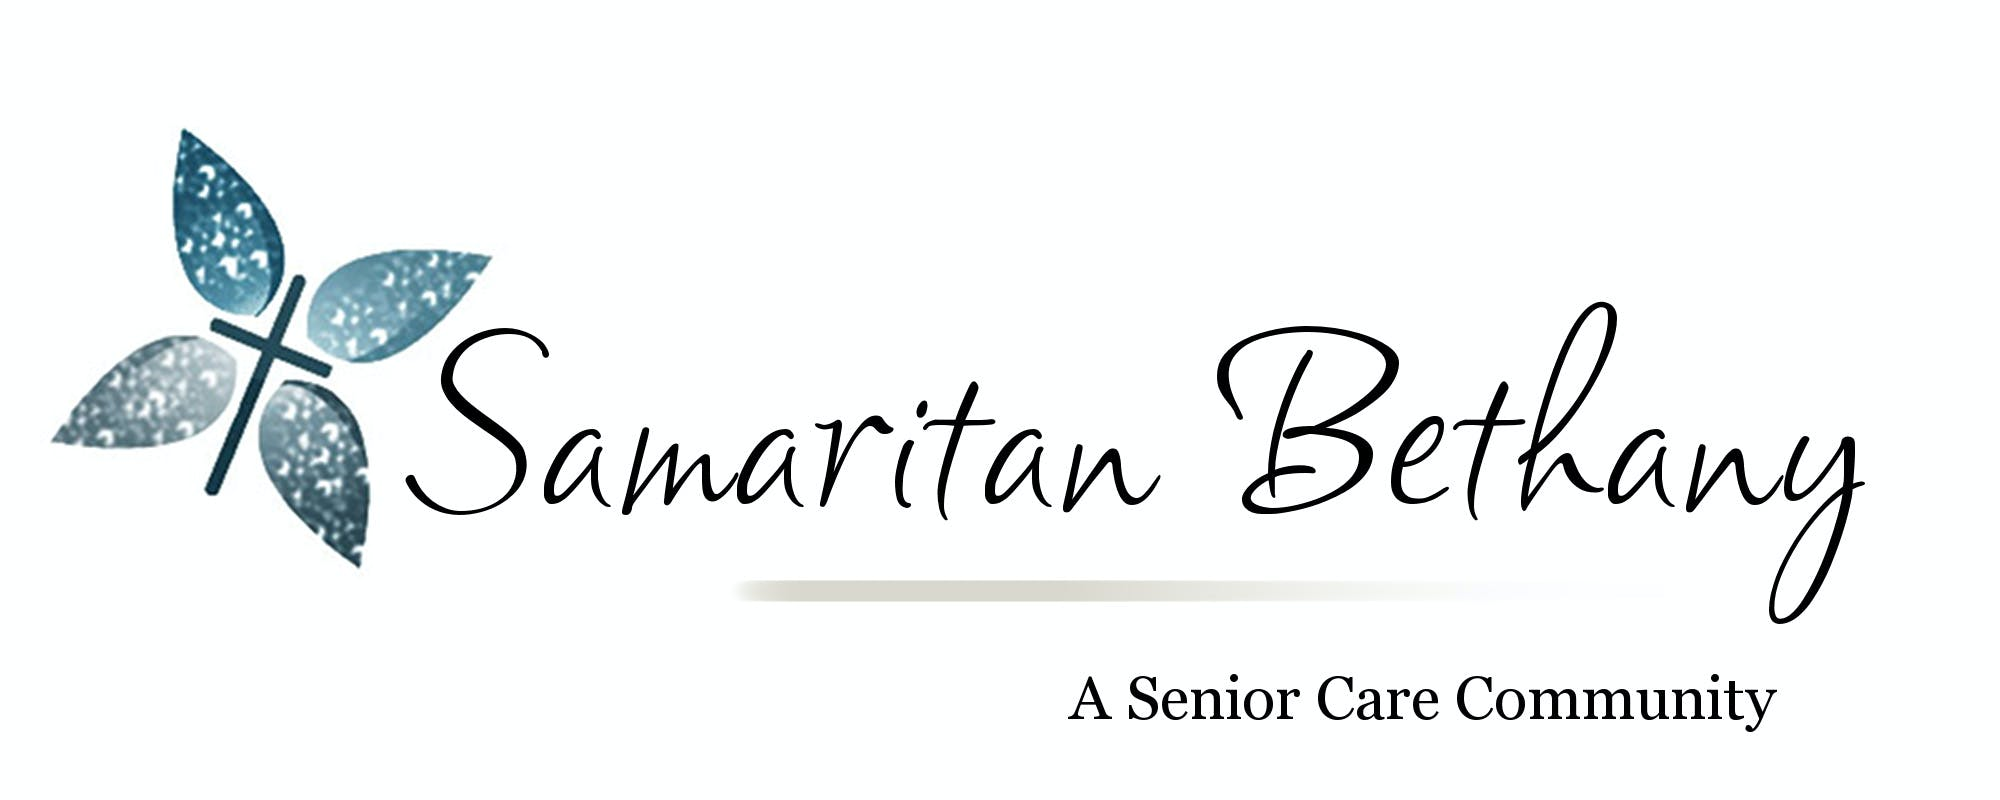 Samaritan Bethany Senior Care Community